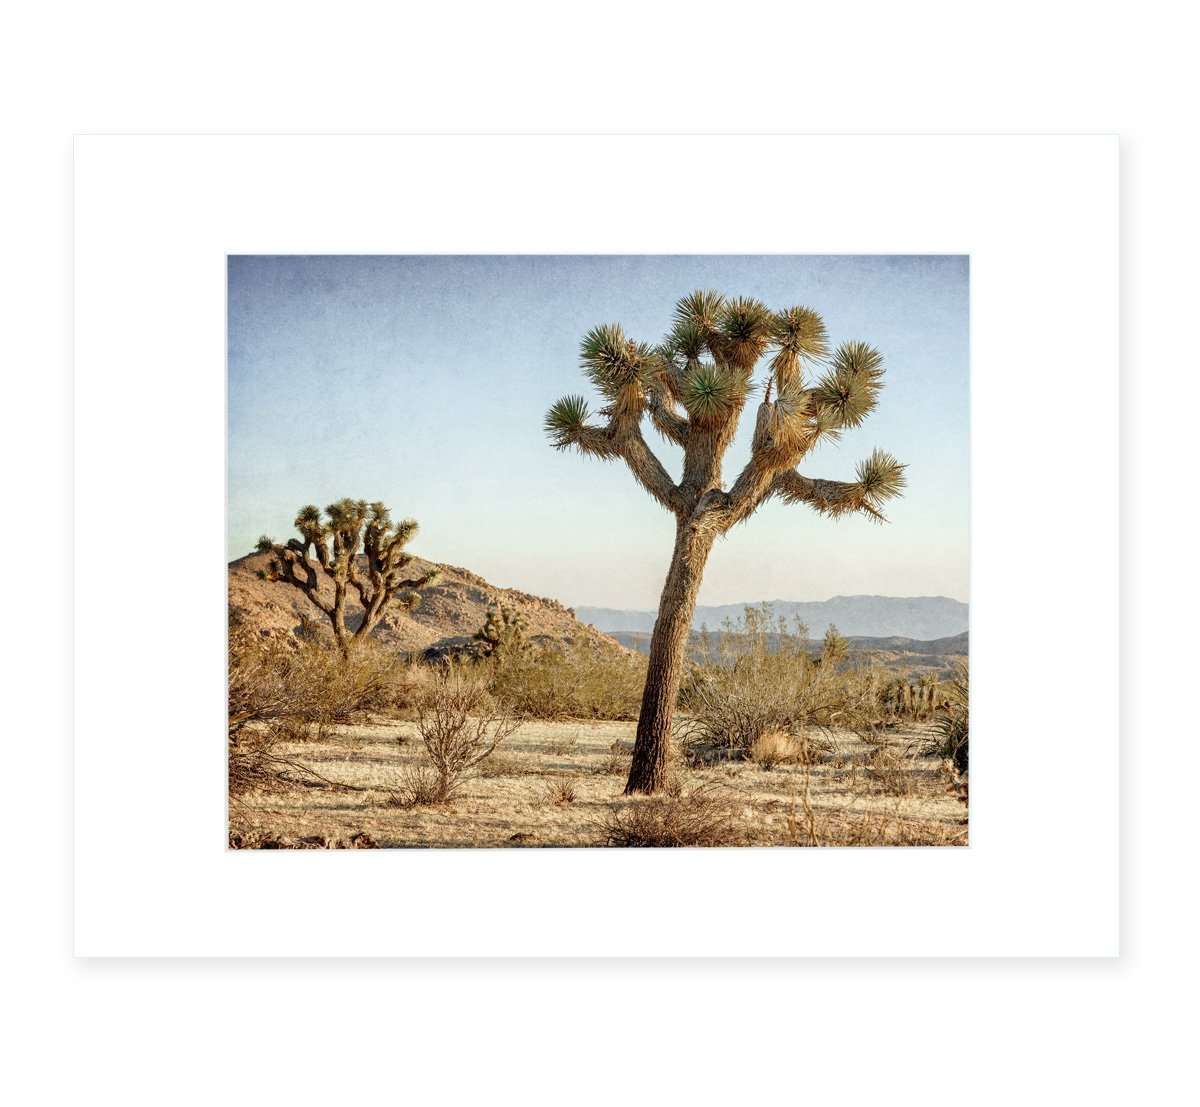 Joshua Tree Wall Art, Southwestern Decor, California Desert Picture, 8x10 Matted Photographic Print (fits 11x14 frame), 'Mighty Joshua' by Offley Green